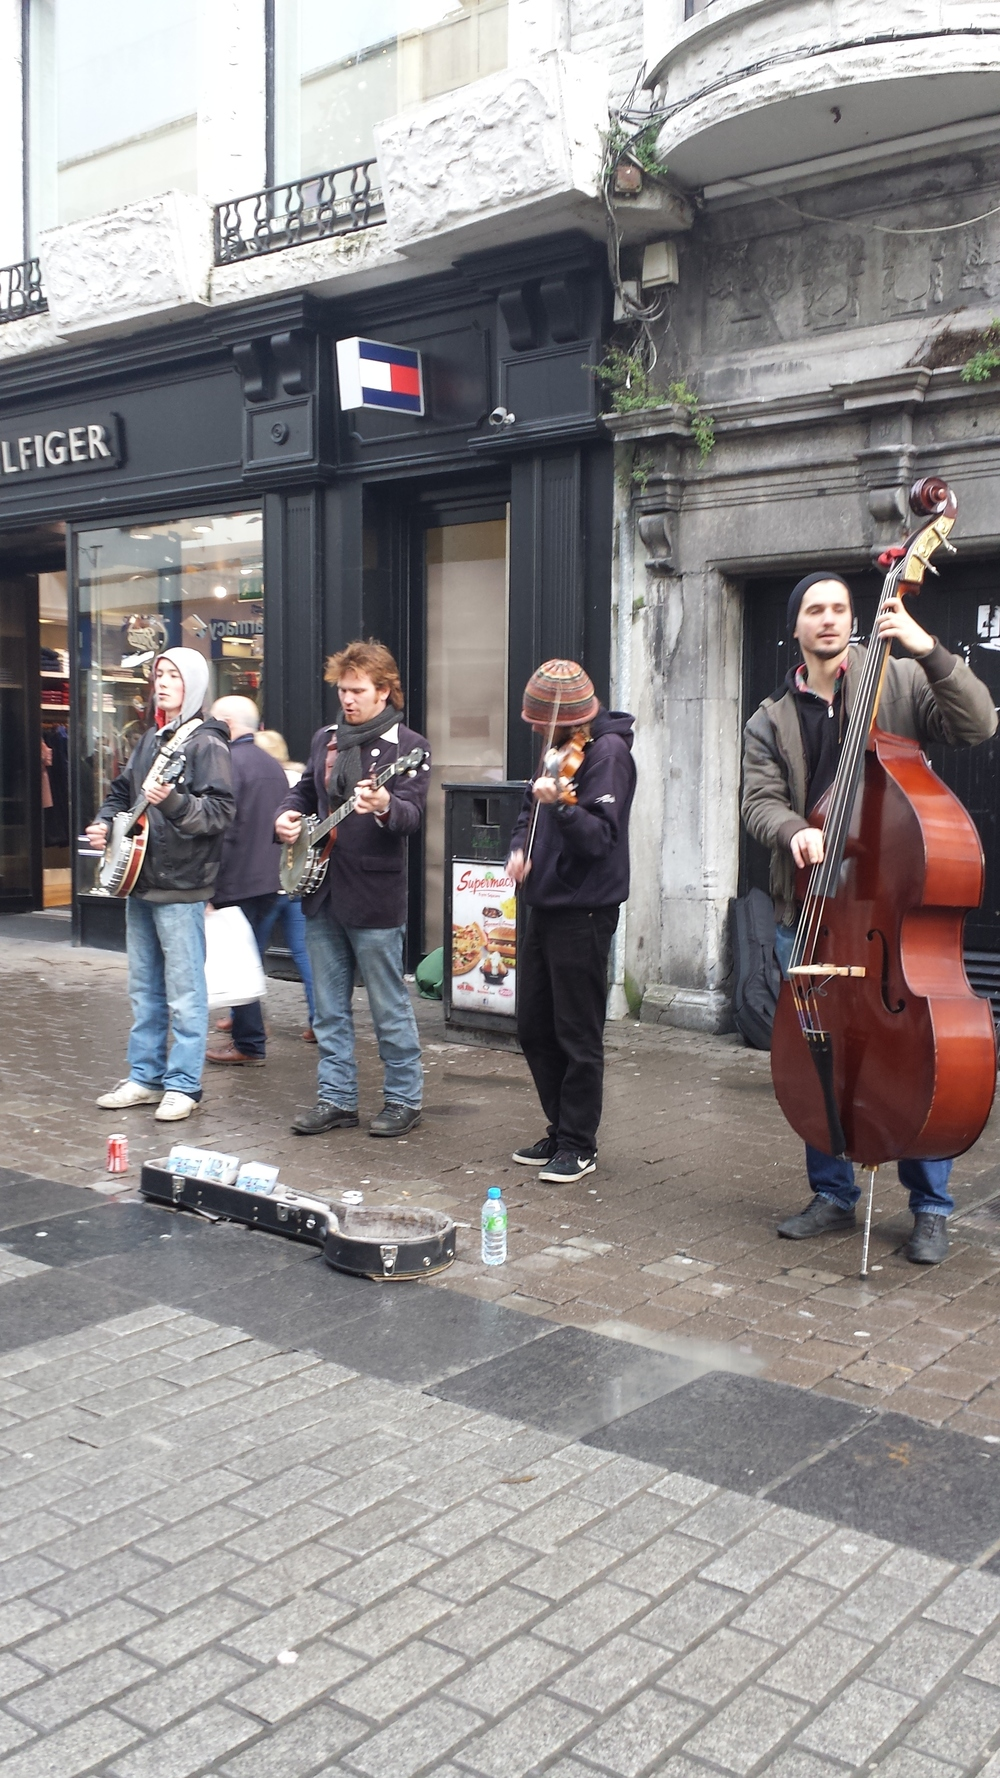 Buskers in Galway are always great